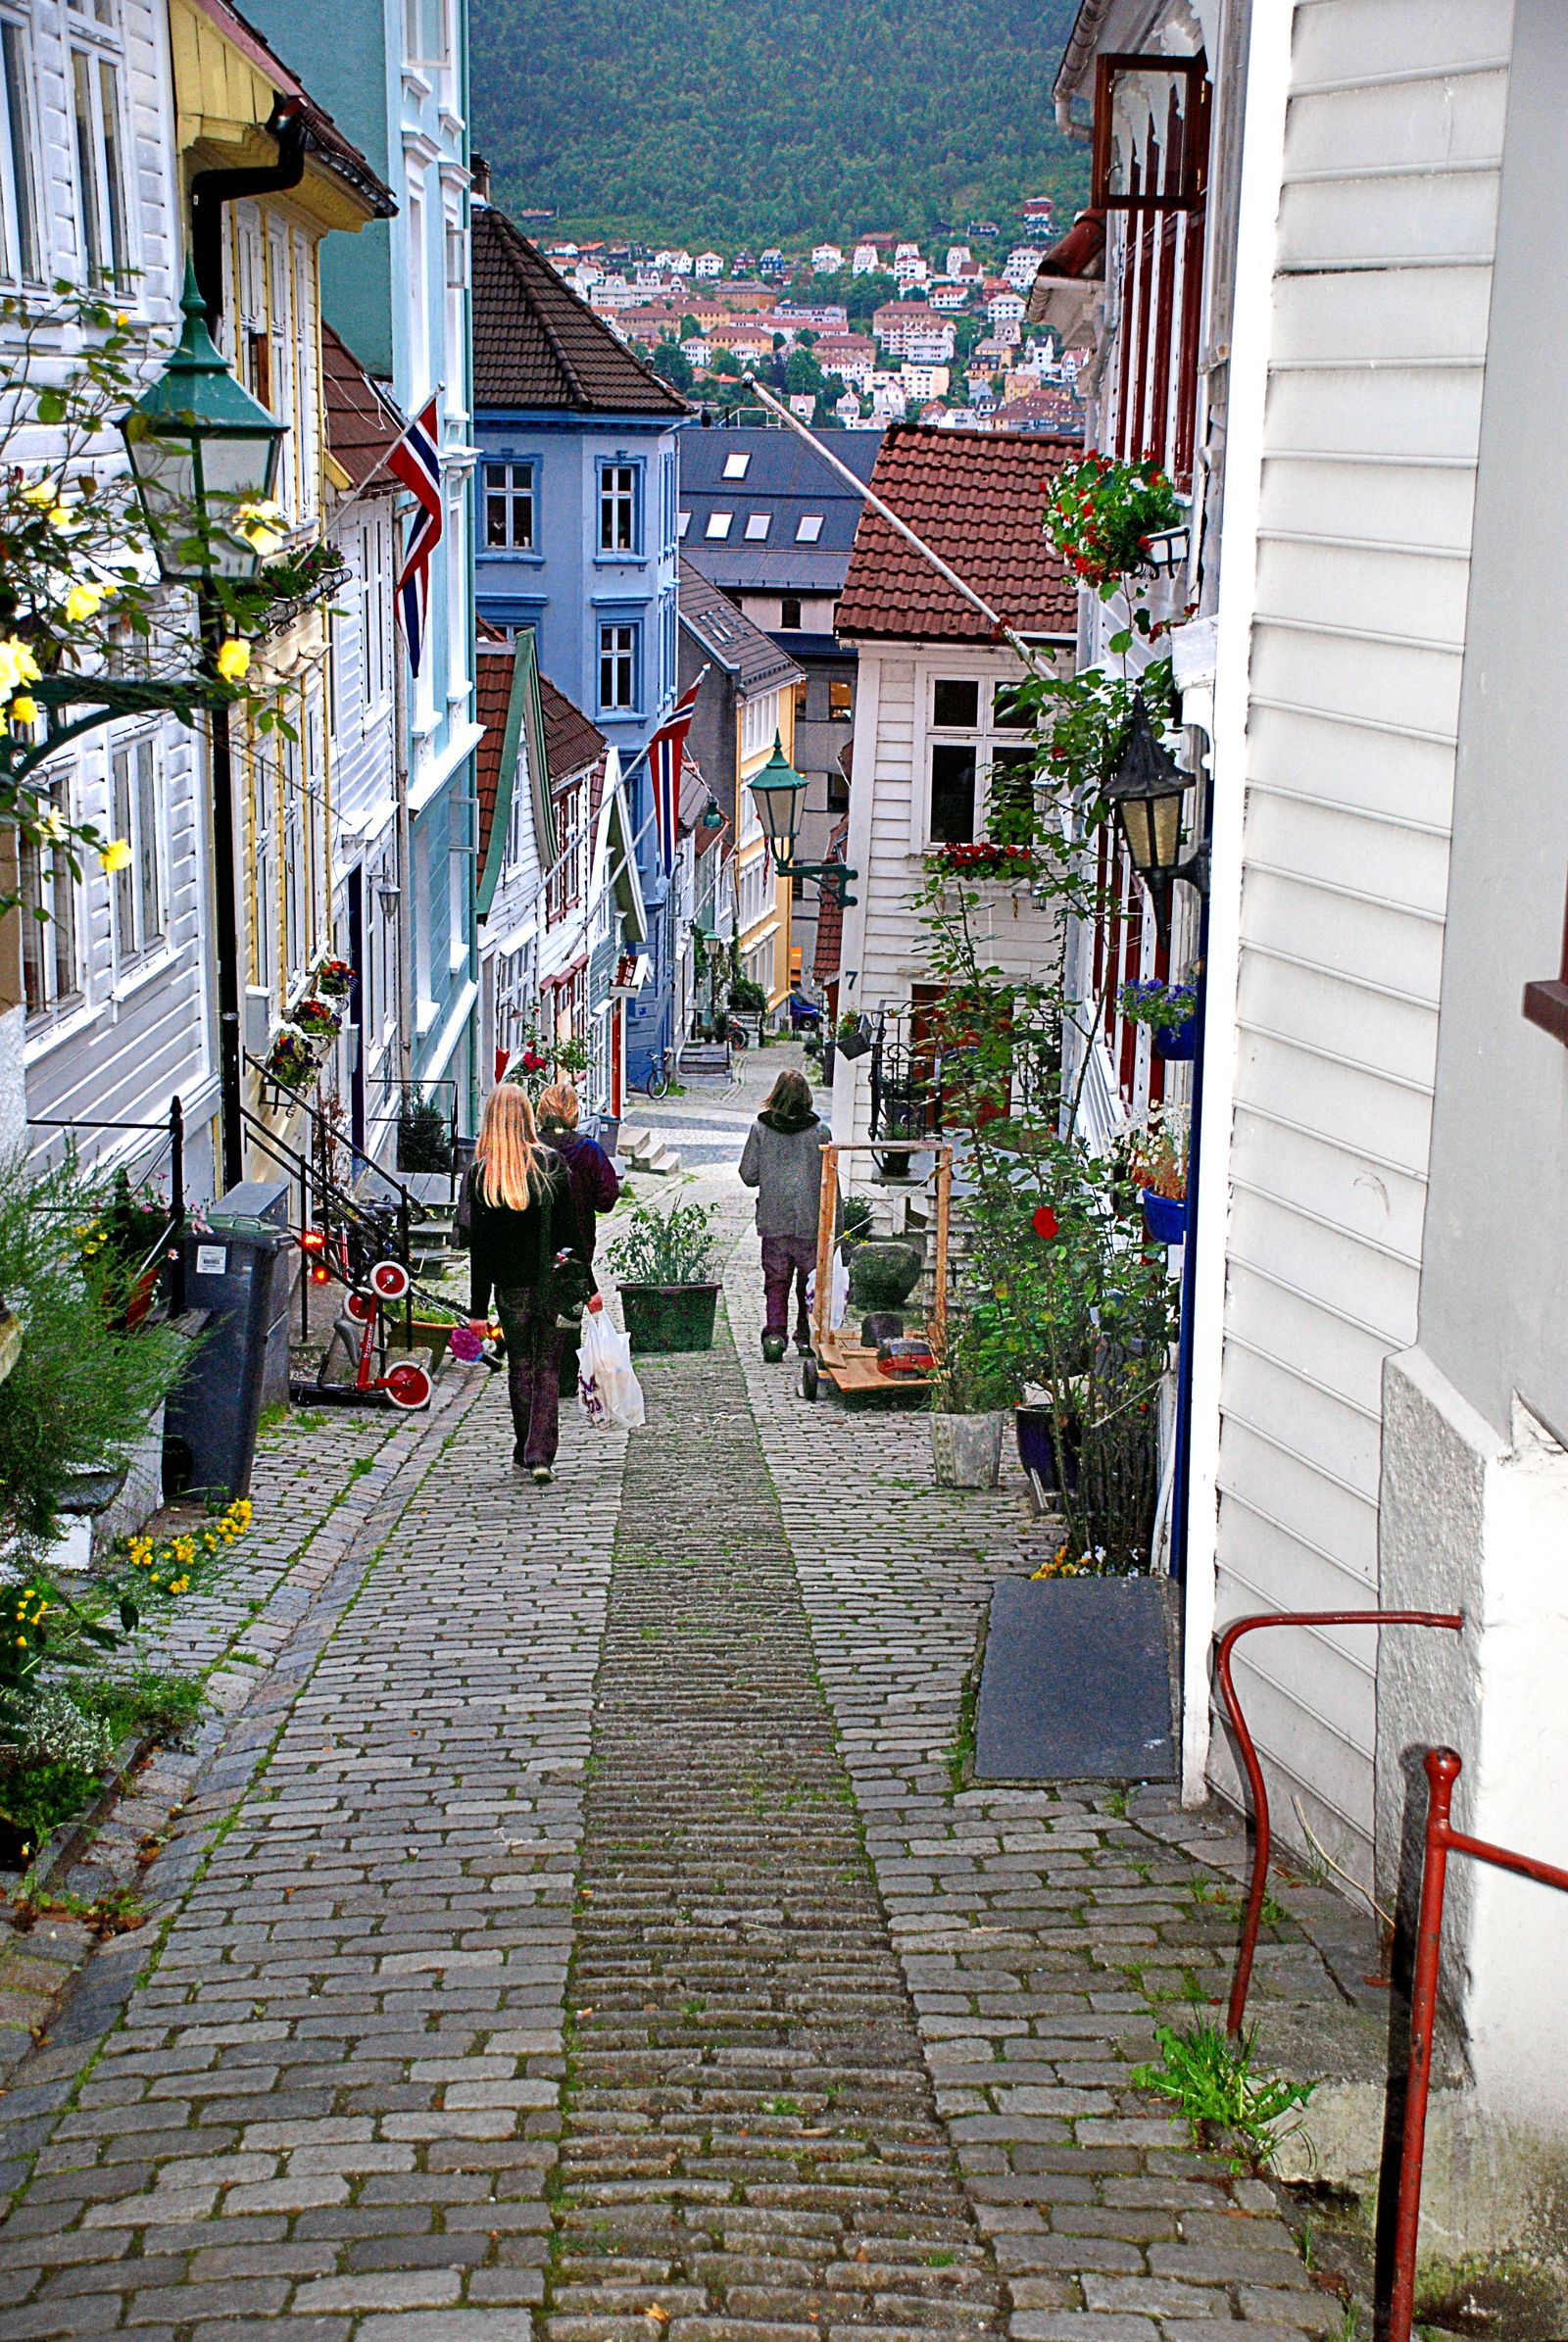 I would love to travel, and Norway is on the list. This is beautiful, Lukte salt sjøluft! (smell the salty sea air in Norvegian.